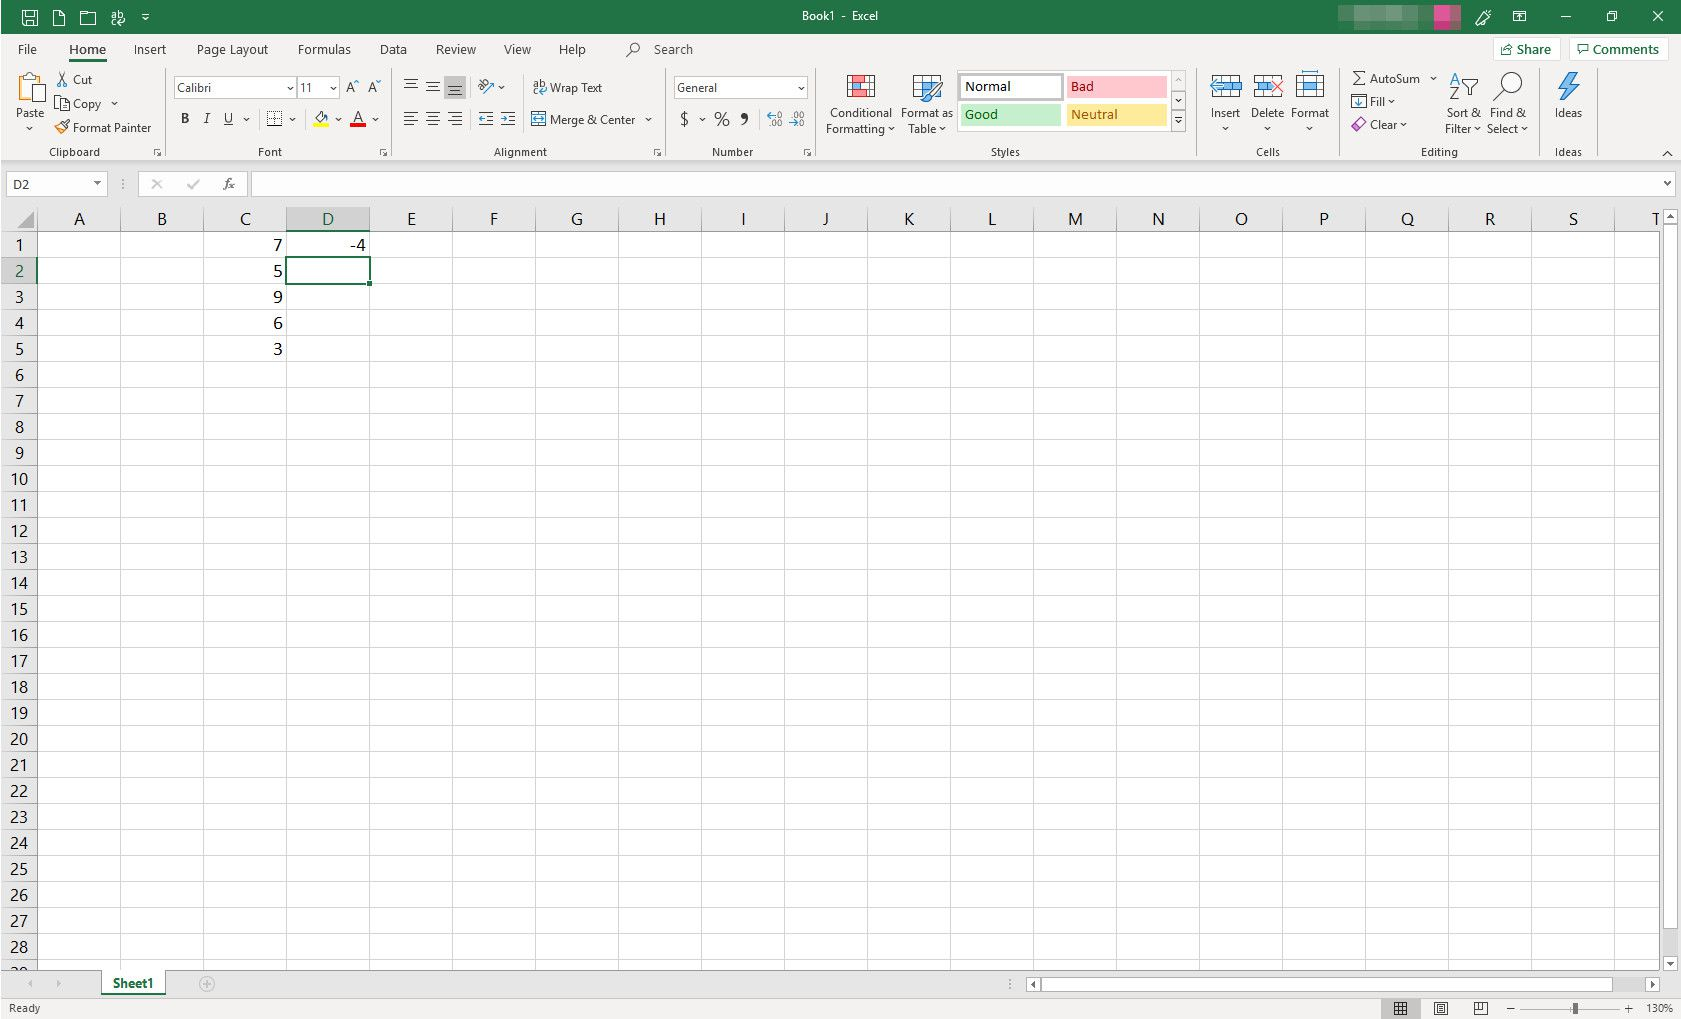 MS Excel spreadsheet with some cells populated